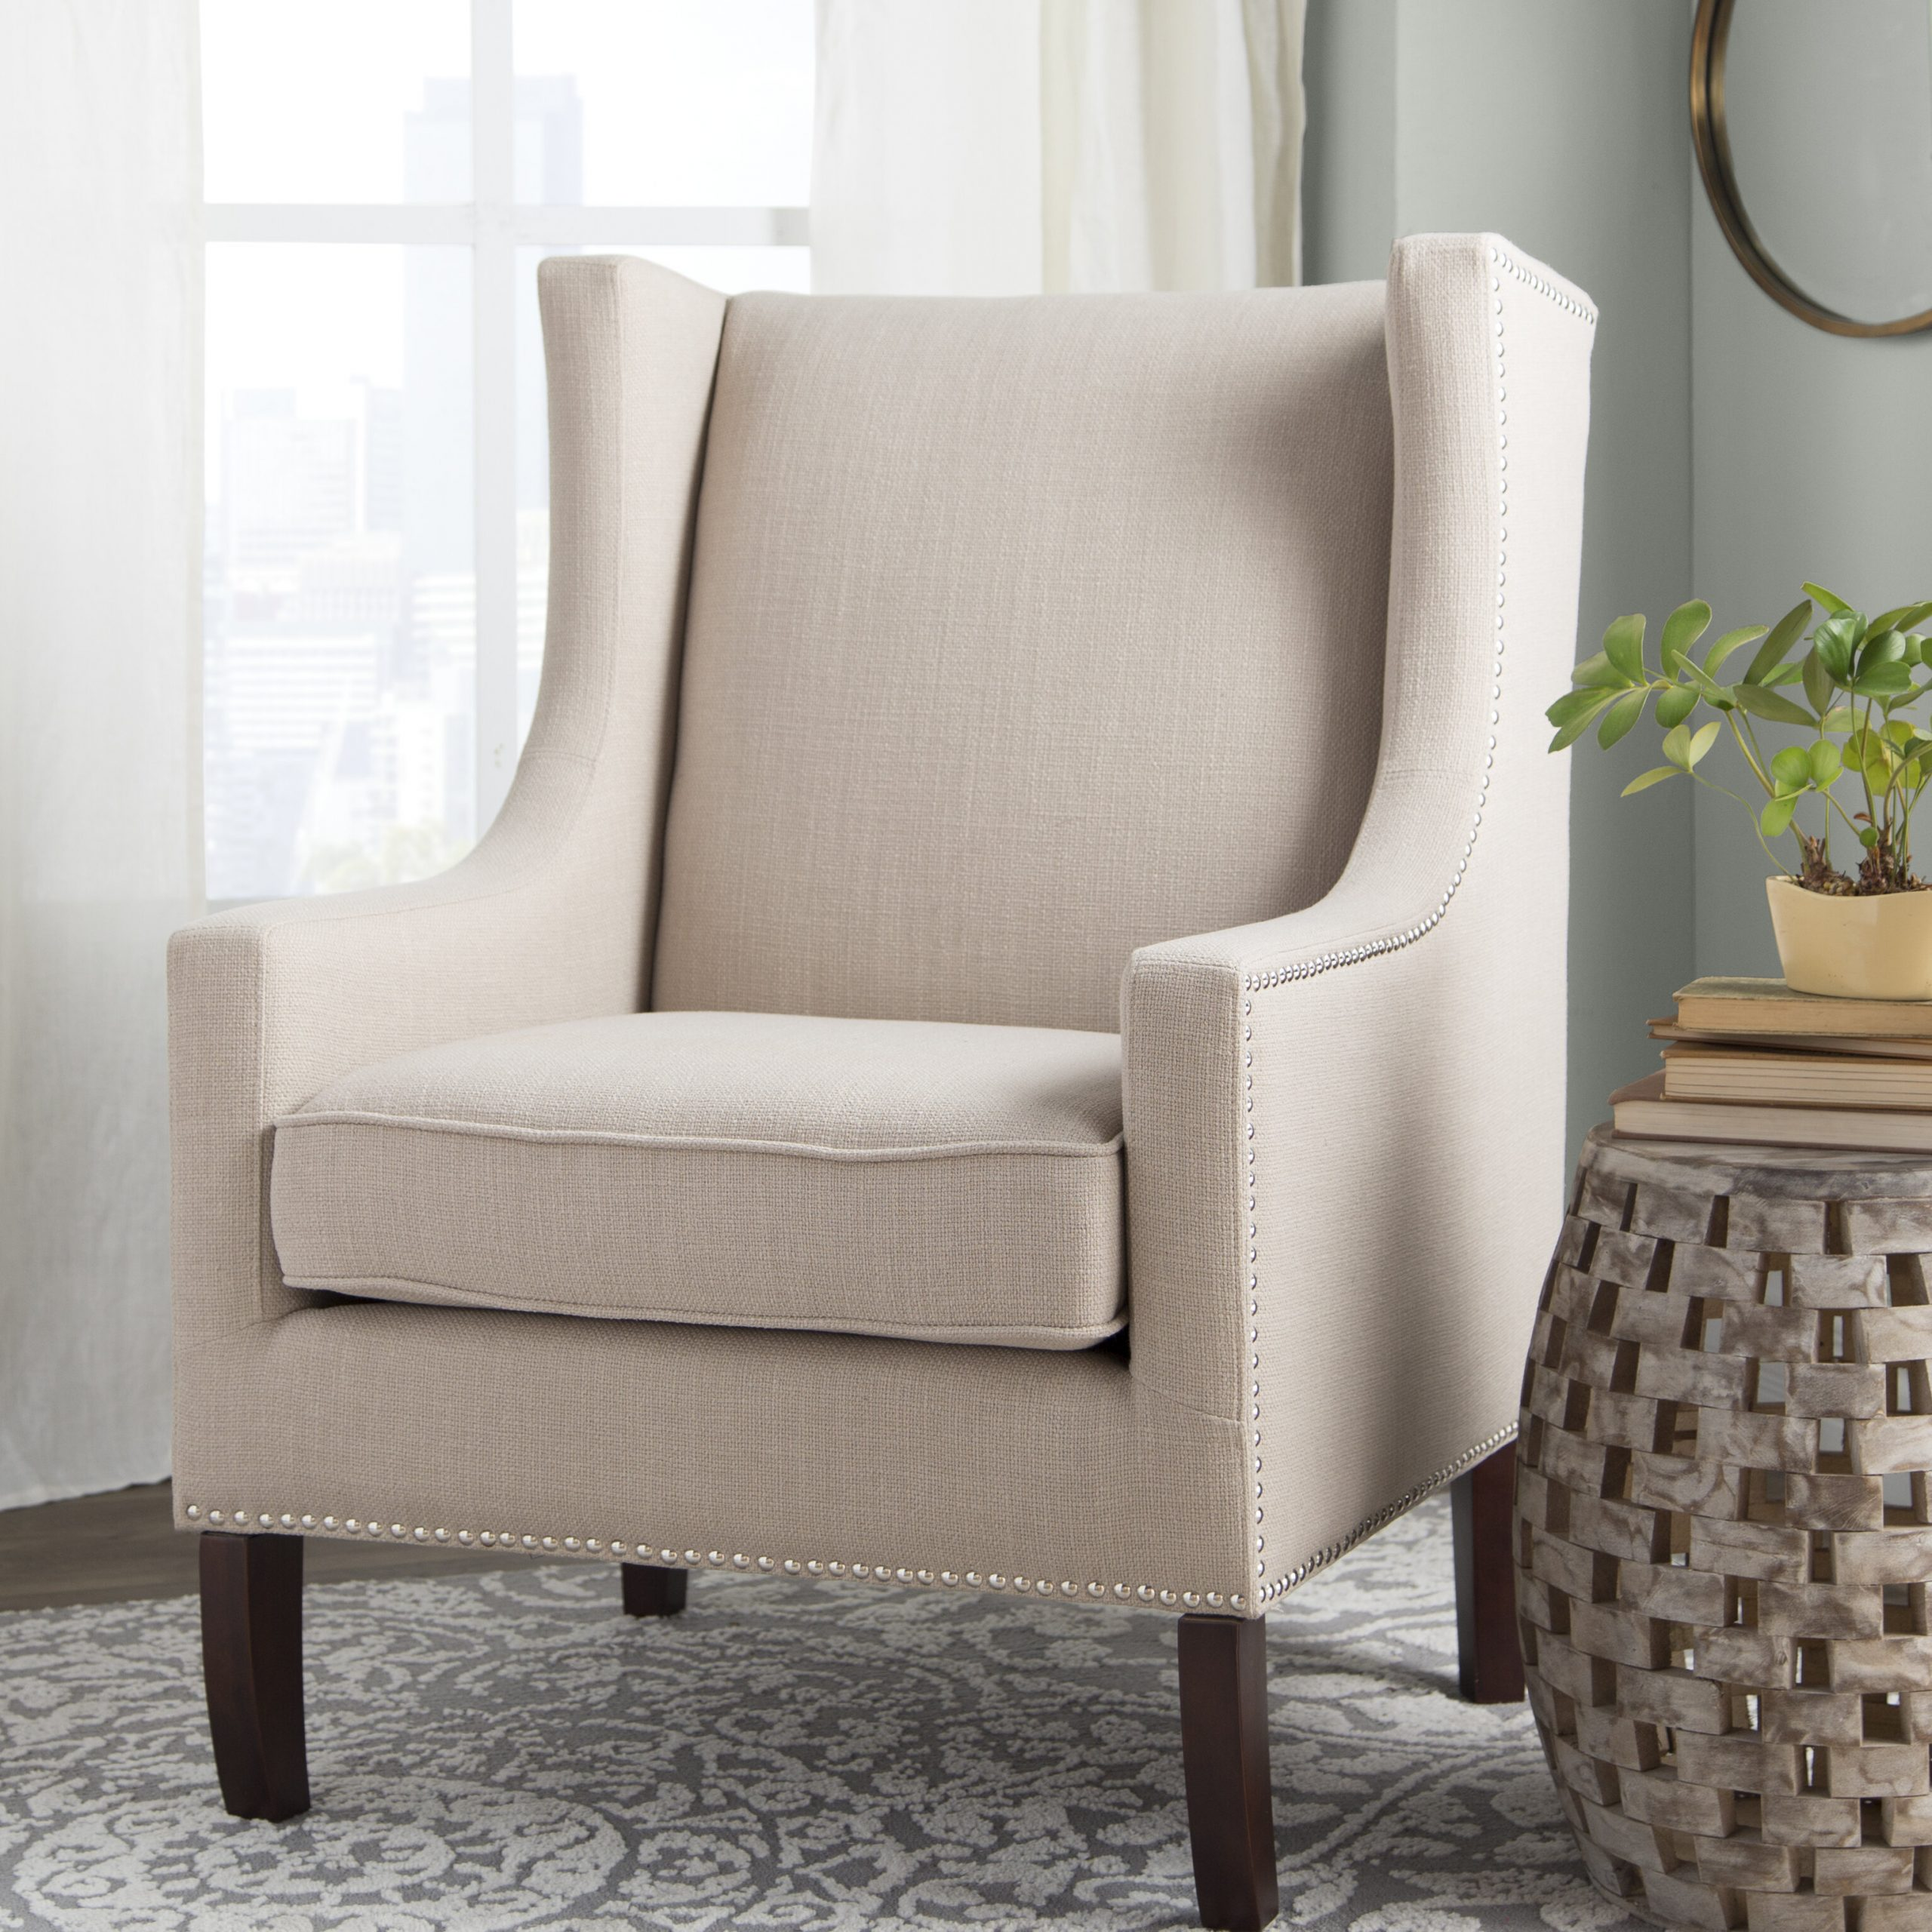 Wingback Accent Chairs You'Ll Love In 2021 | Wayfair Intended For Bouck Wingback Chairs (View 15 of 15)